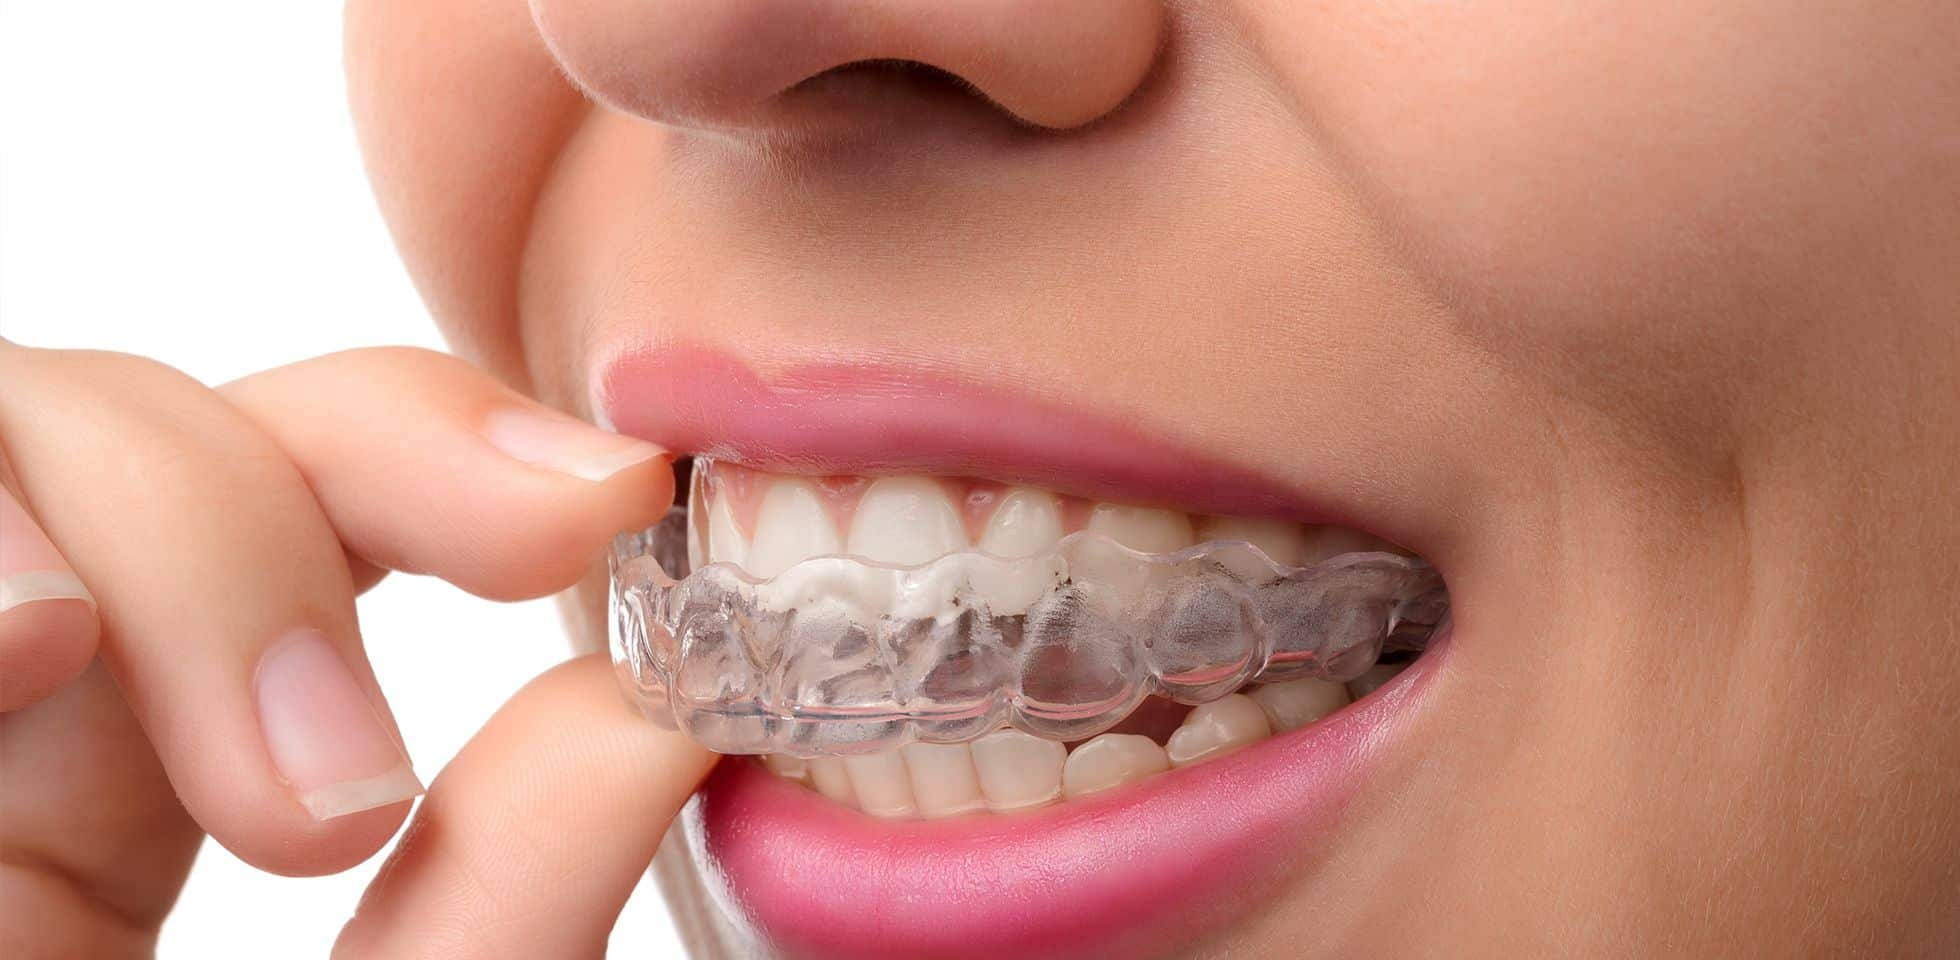 How Much Does Invisalign Cost in NYC?